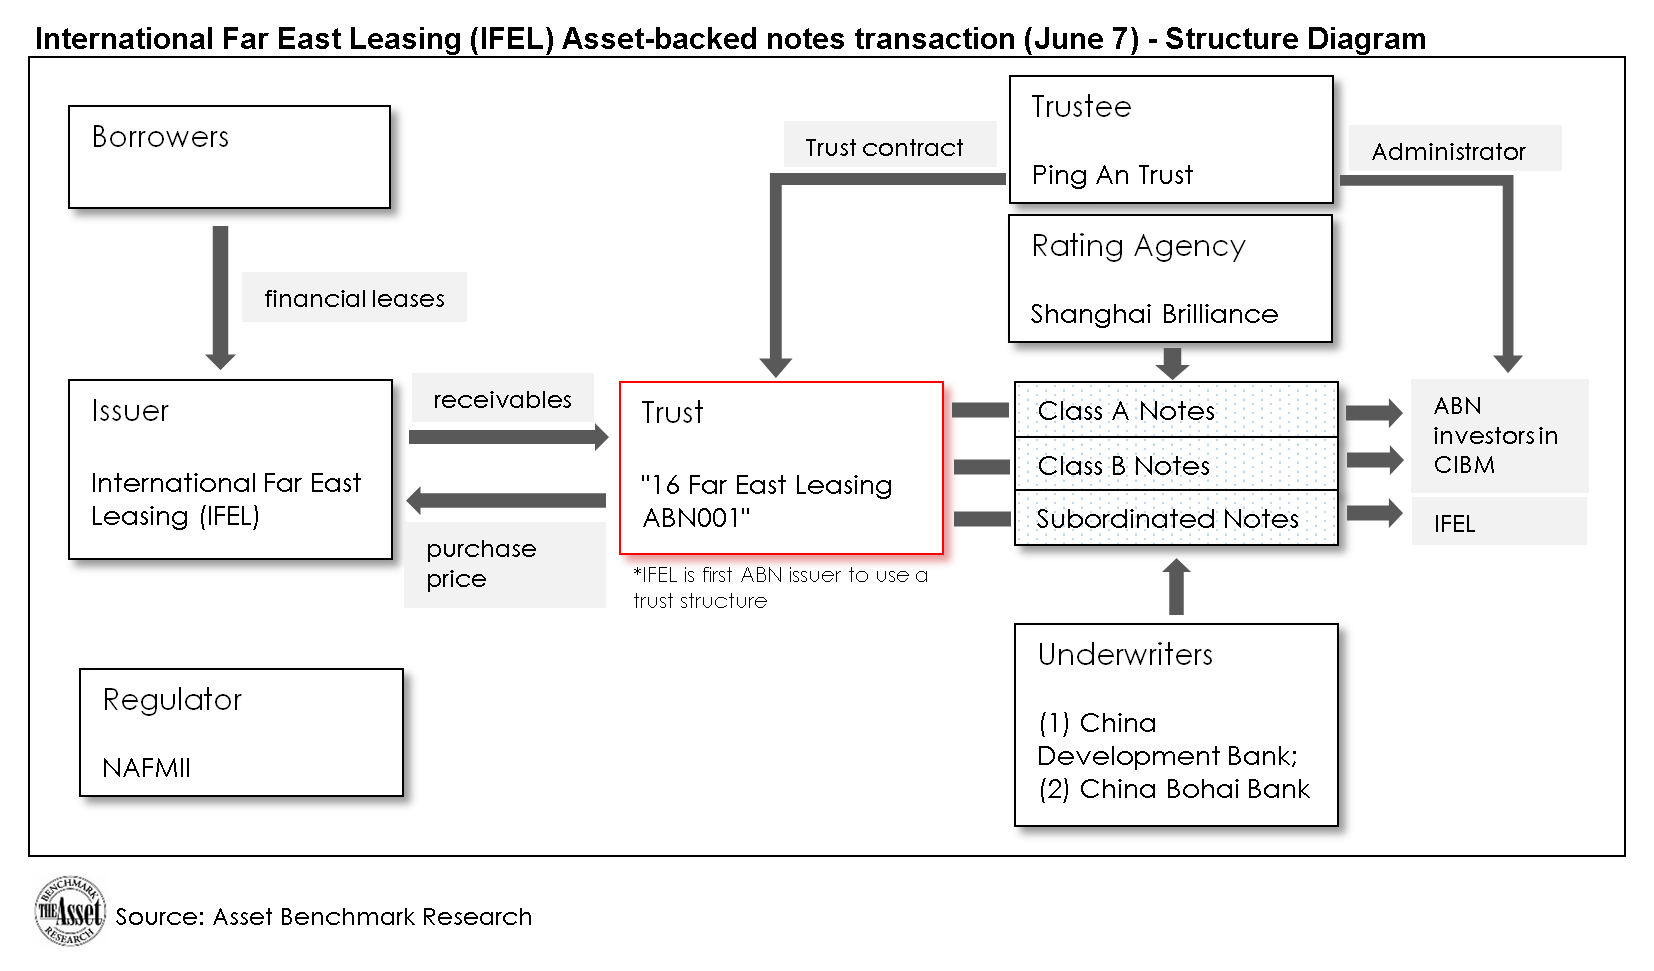 Breakthrough deal in China securitization to bolster ABS